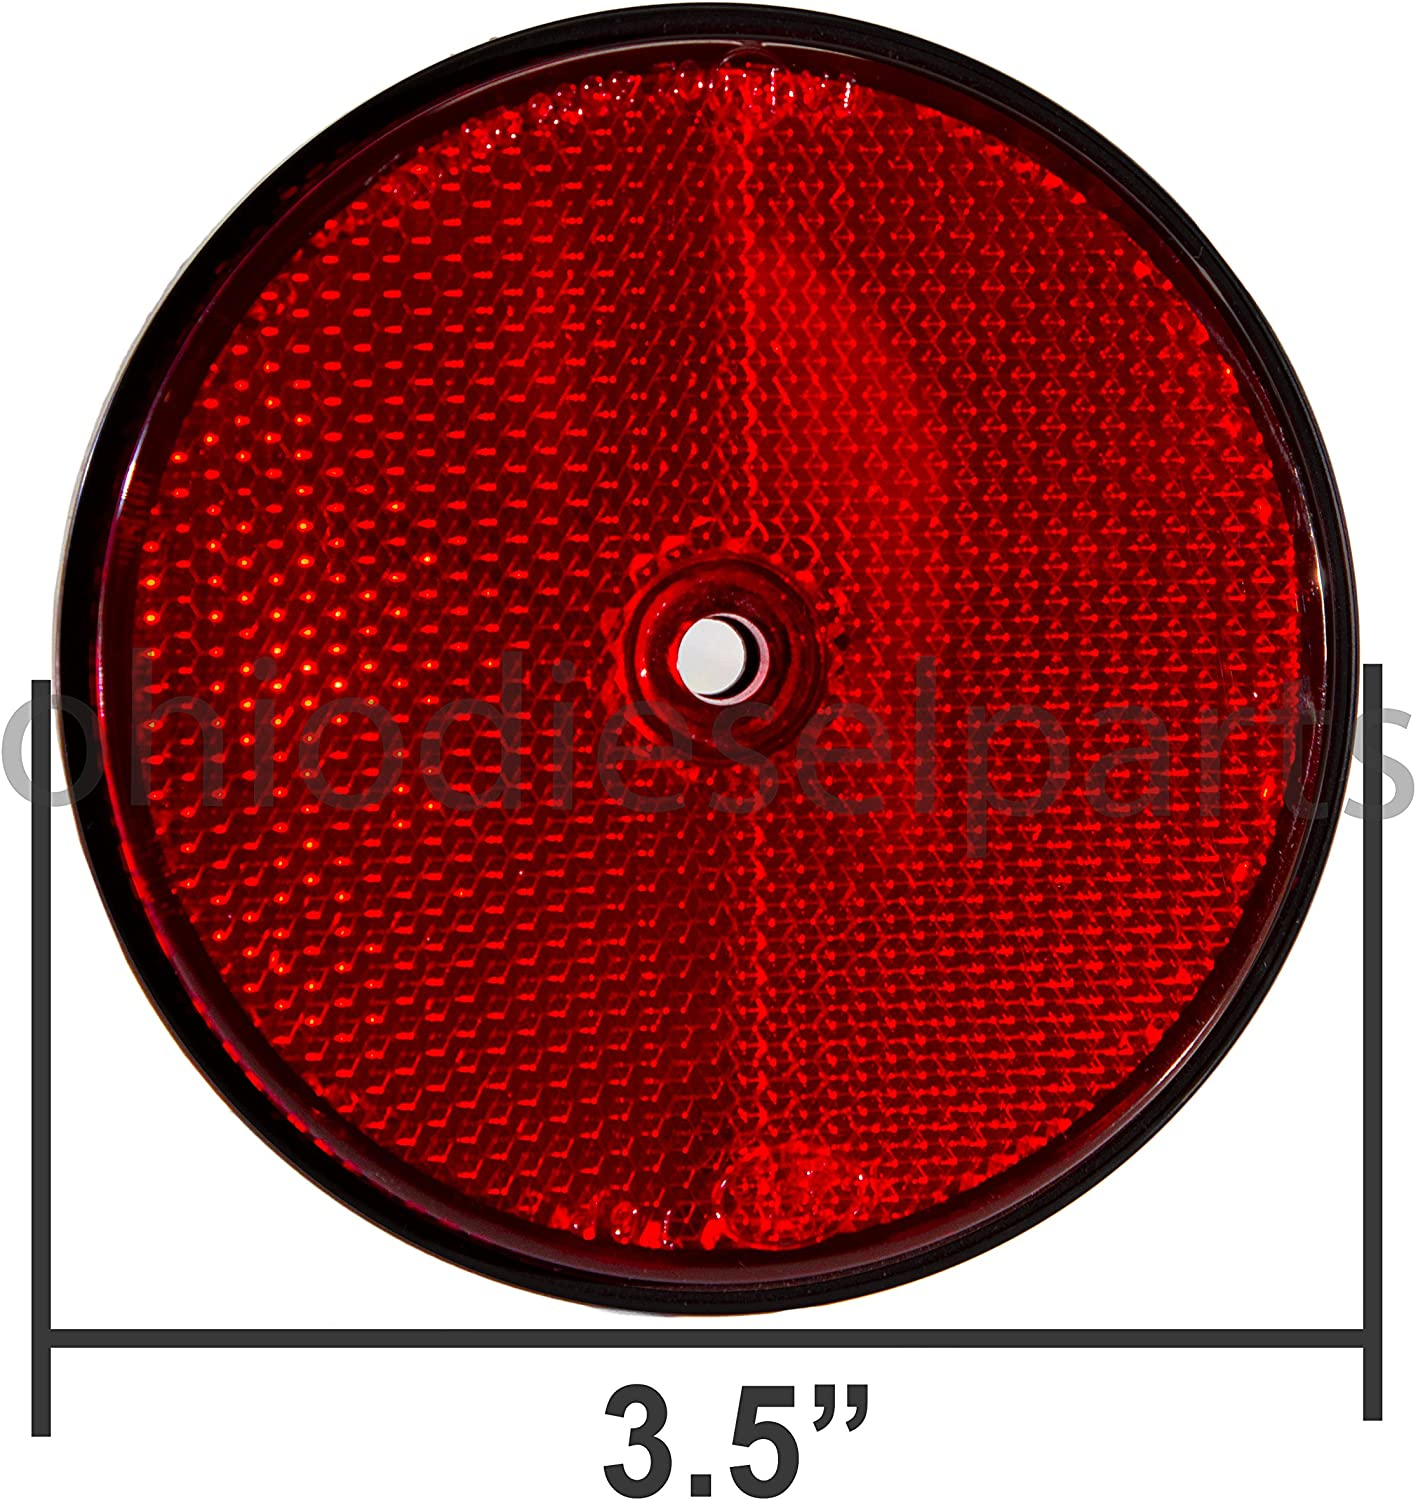 Ohio Diesel Parts 3-1//2 Inch Truck Tractor Trailer Round Red Reflector Stud-Mounted 3.5 1-Pack